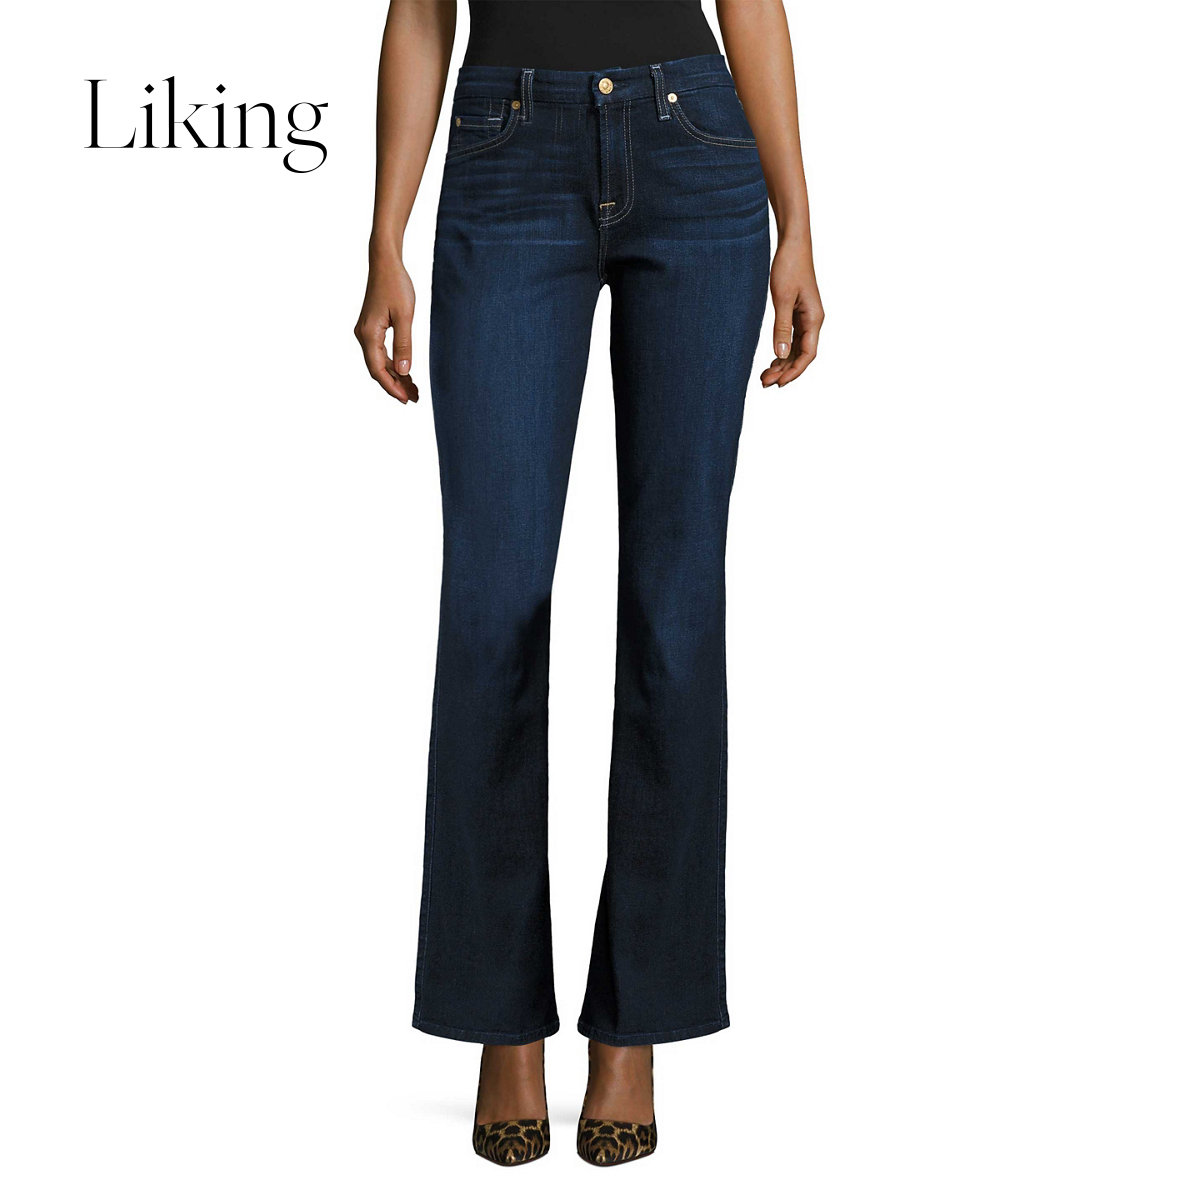 7 for all mankind 赛文 Freomede Women's Blue High Waist Flare Cotton Jeans